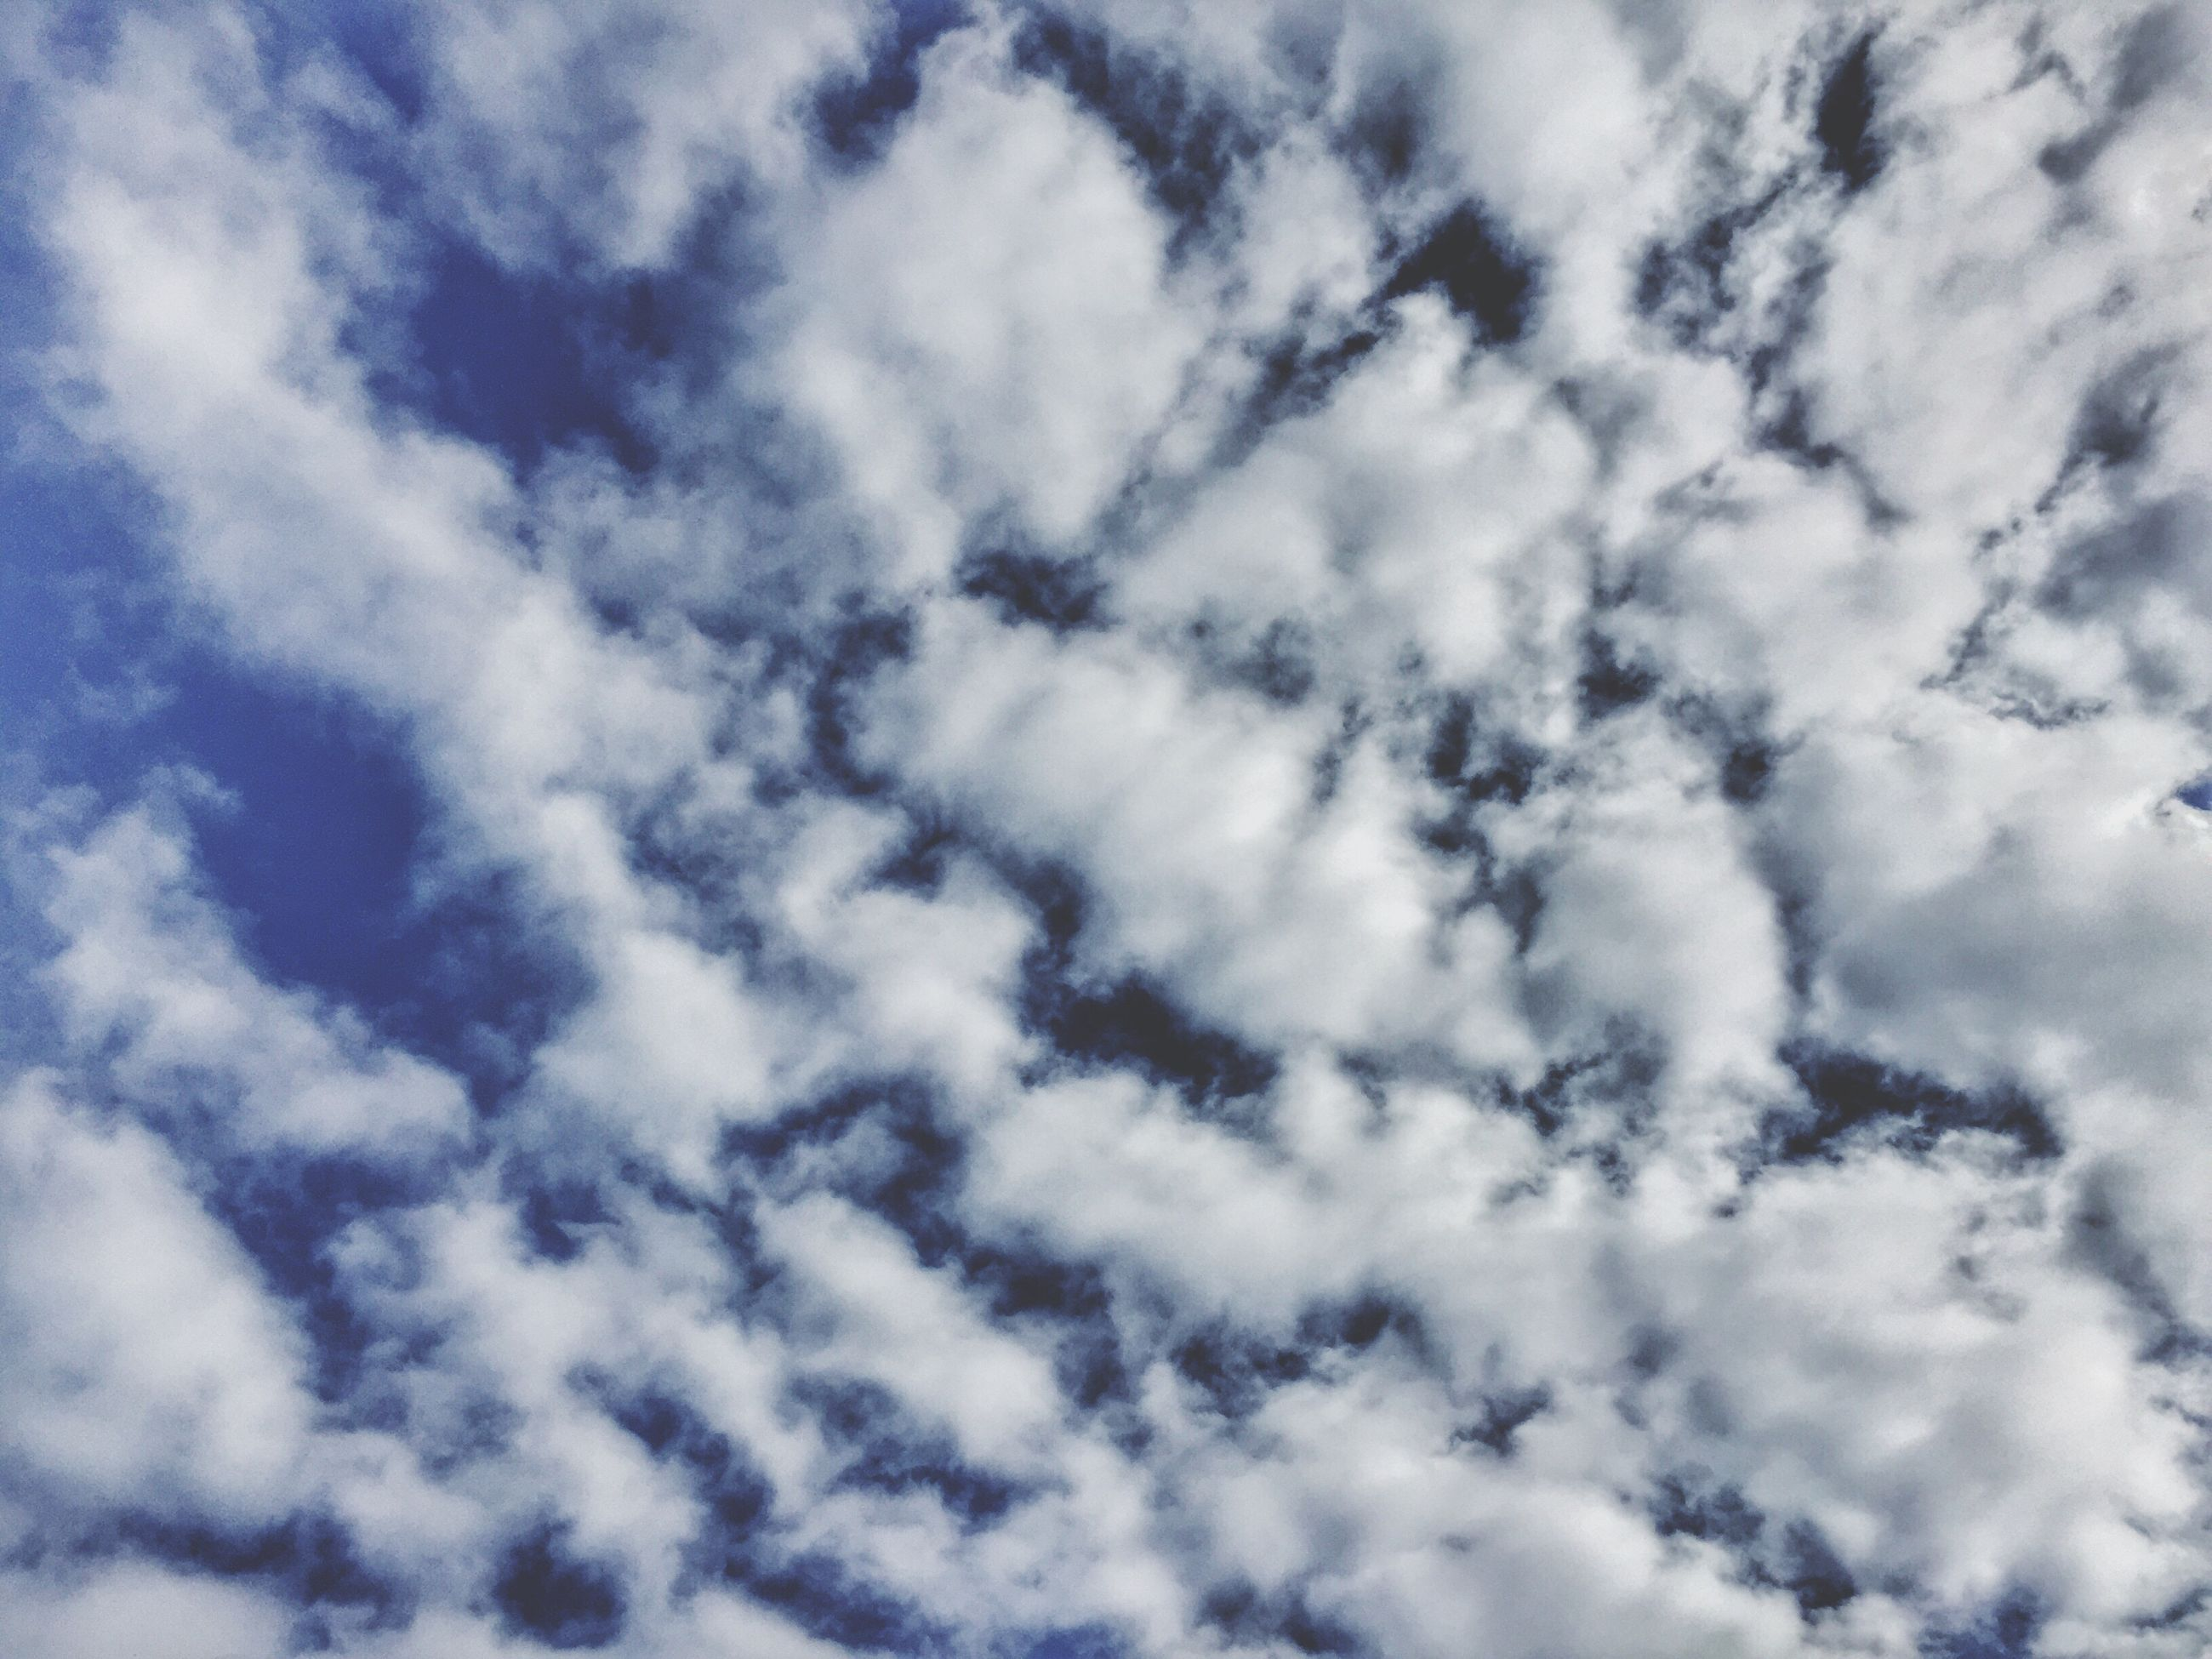 sky, low angle view, cloud - sky, backgrounds, nature, no people, tranquility, cloudscape, full frame, day, scenics, beauty in nature, heaven, outdoors, sky only